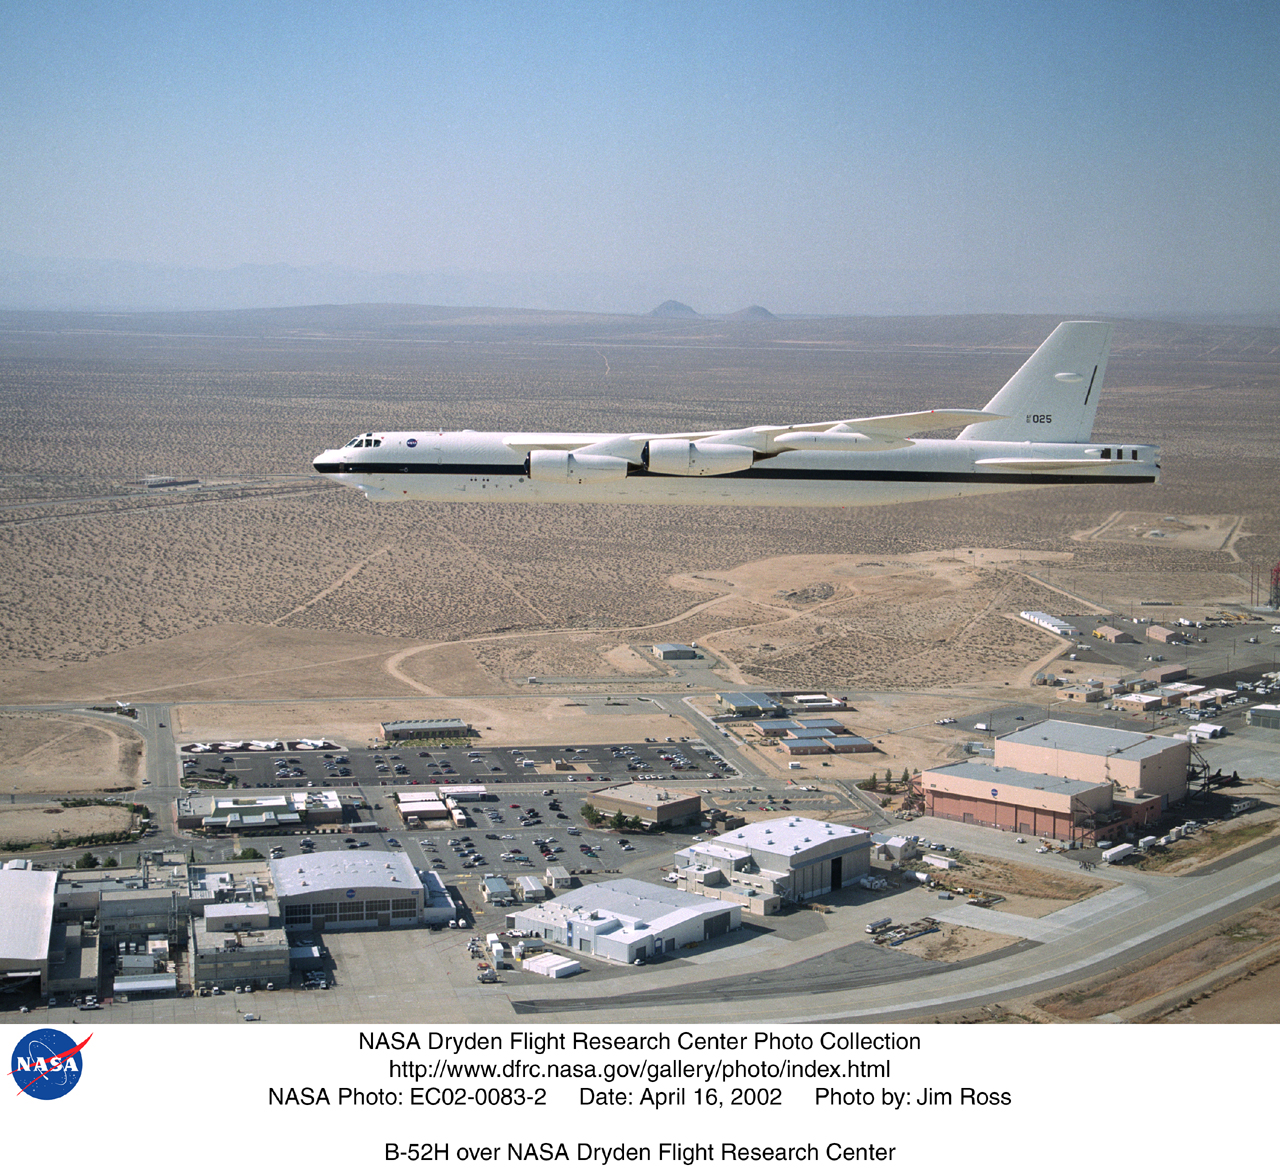 NASA Dryden B-52 Mothership Photo Collection